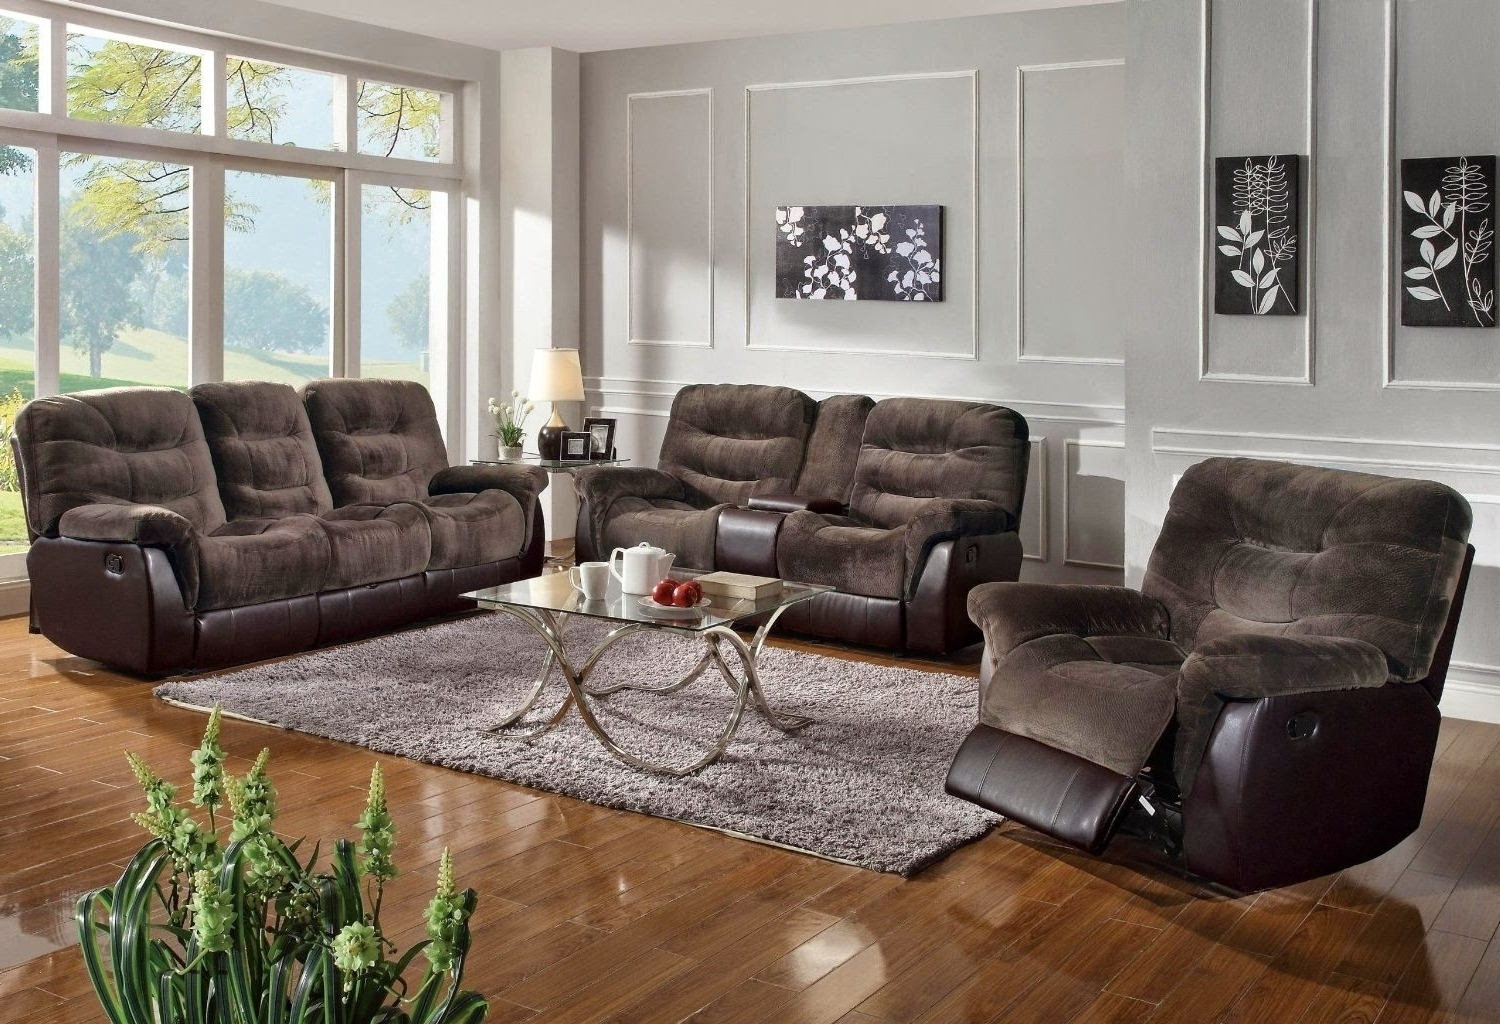 Preferred Sectional Sofas With Recliners For Small Spaces With Furniture Reclining Sectional Sofas For Small Spaces Reclining (View 5 of 15)